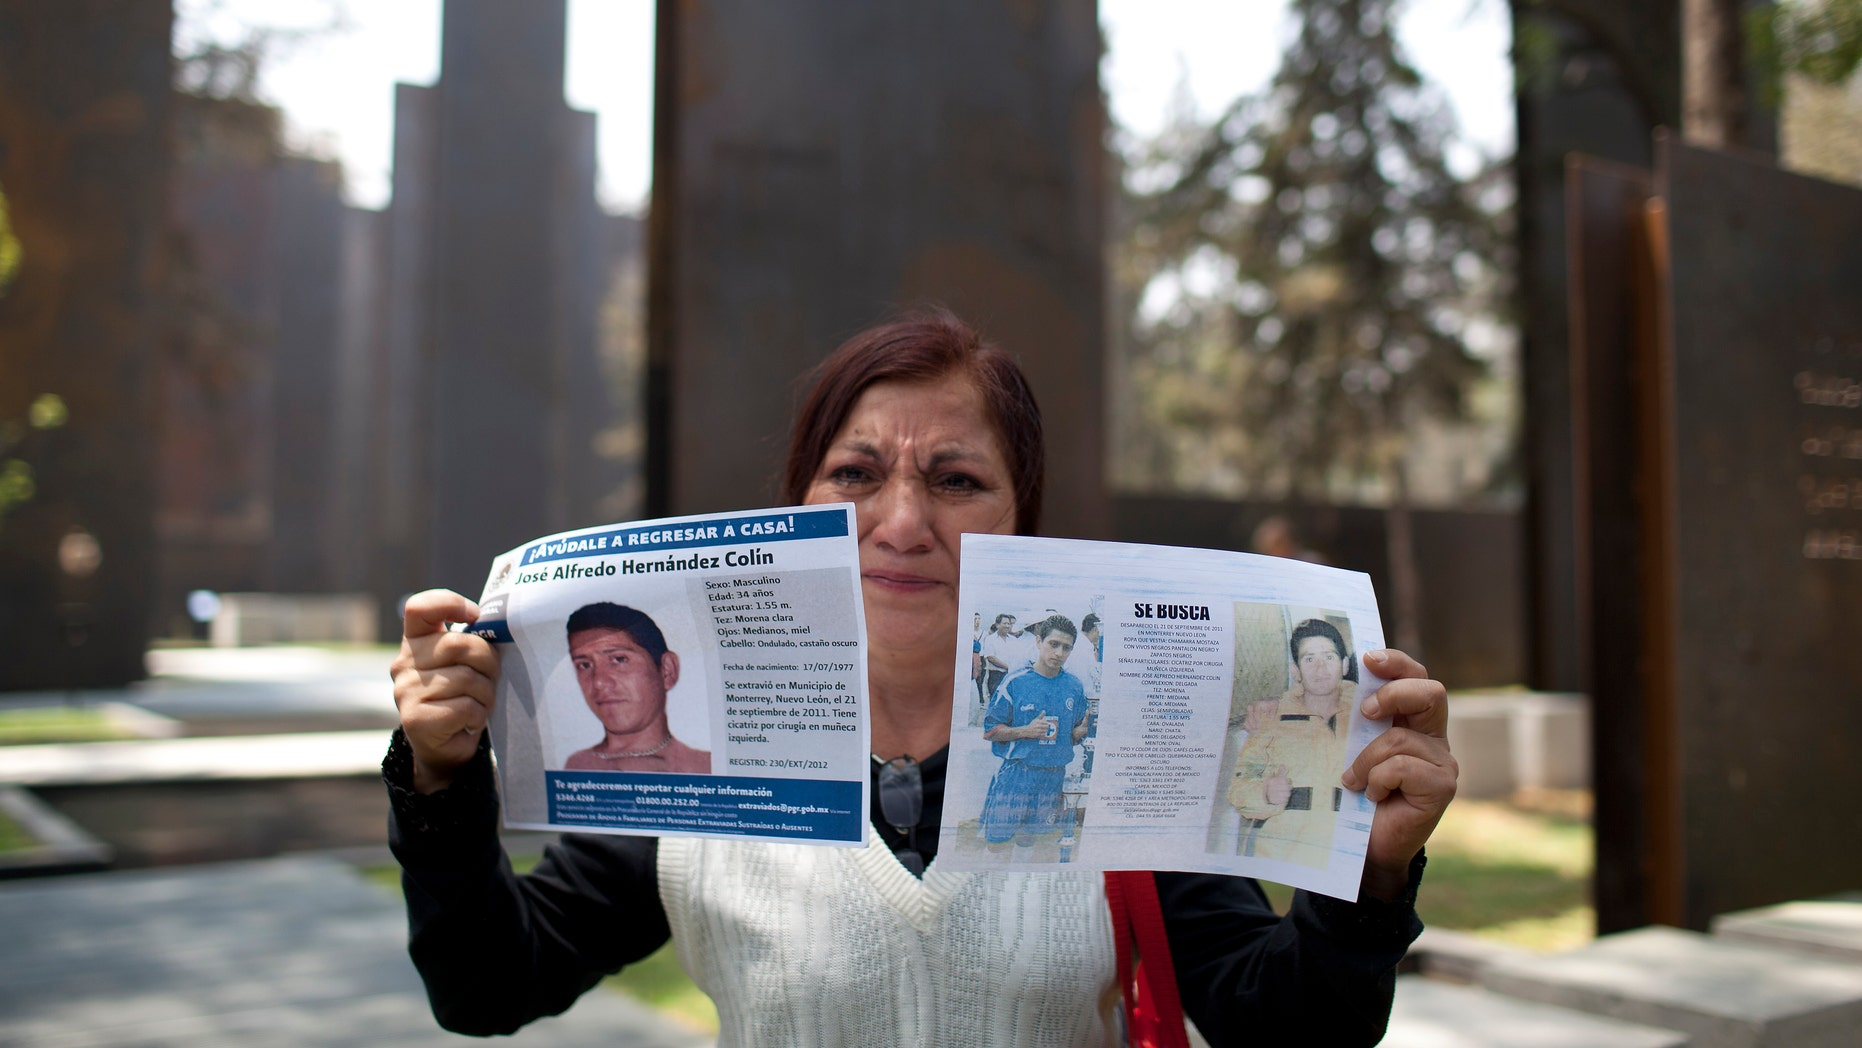 Yolanda Colin, shows leaflets with pictures of her nephew, Jose Alfredo Cilin, who went missing since 2011, as she stands by the new memorial in honor of victims of violence during its unveiling in Mexico City, Friday, April 5, 2013.  The monument to the drug war dead consists of steel panels with nothing but few quotes from famous writers and thinkers. Activists who oppose the monument say the government needs to acknowledge each and every one of those killed. (AP Photo/Alexandre Meneghini)